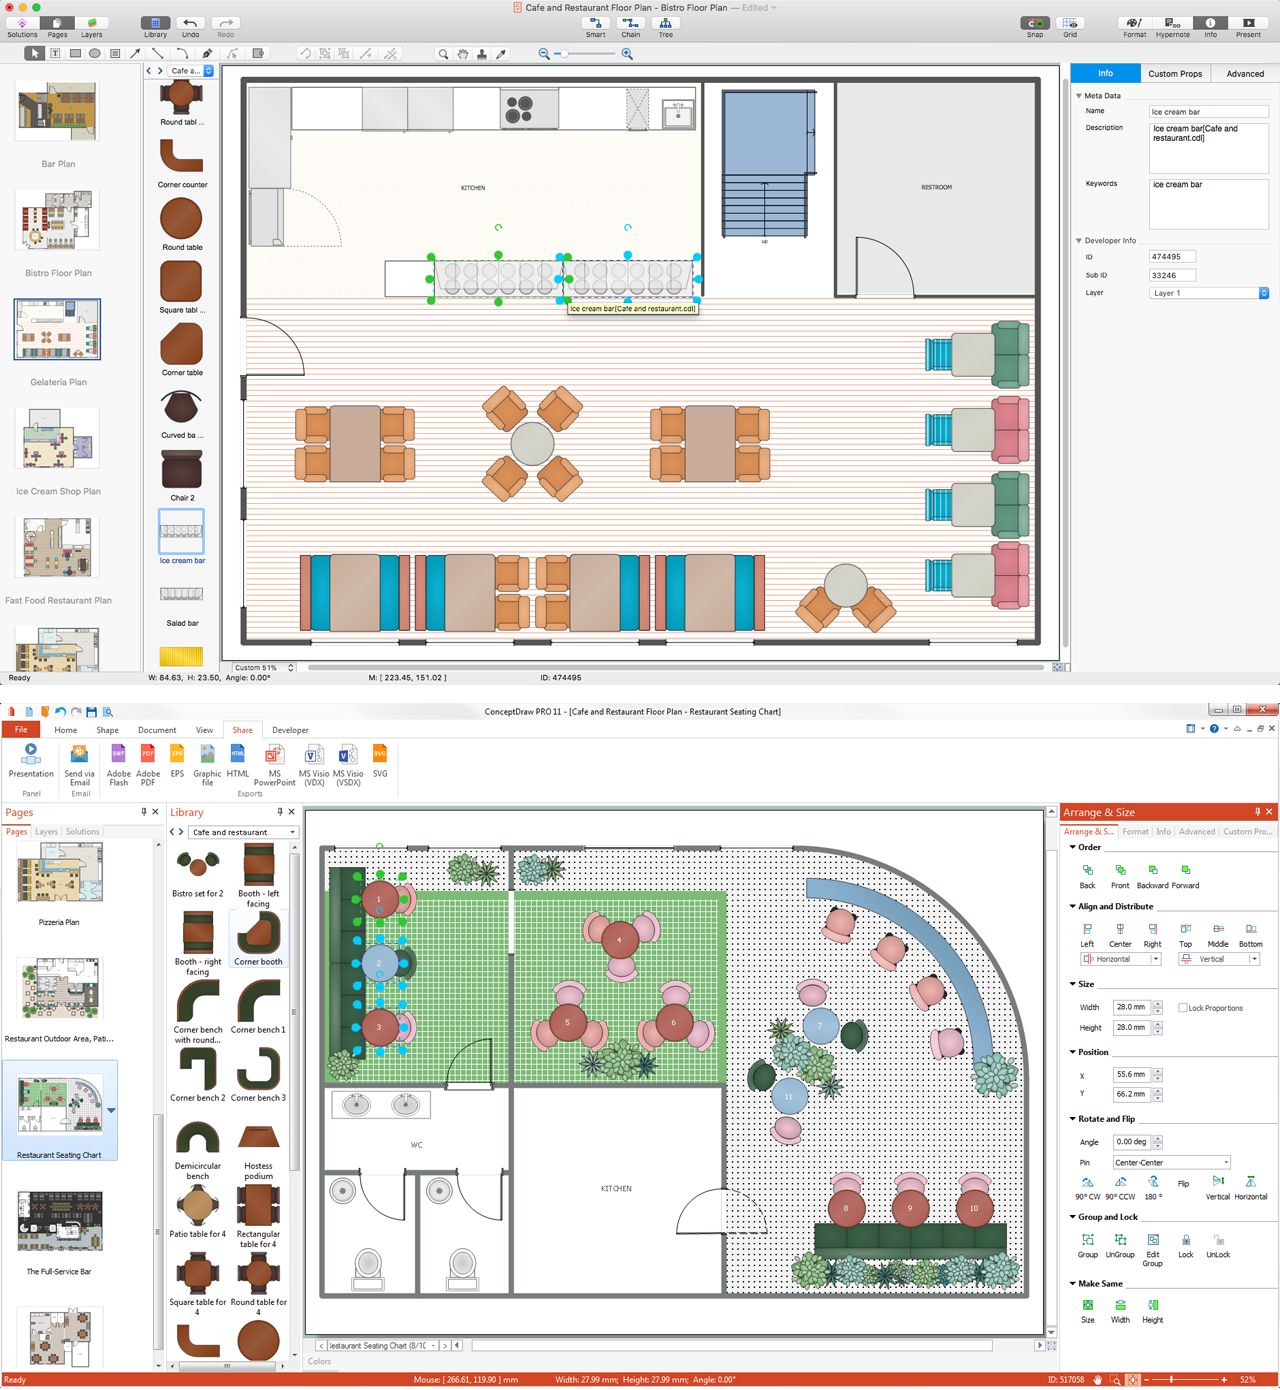 Interior design software building plan examples for Building construction design software